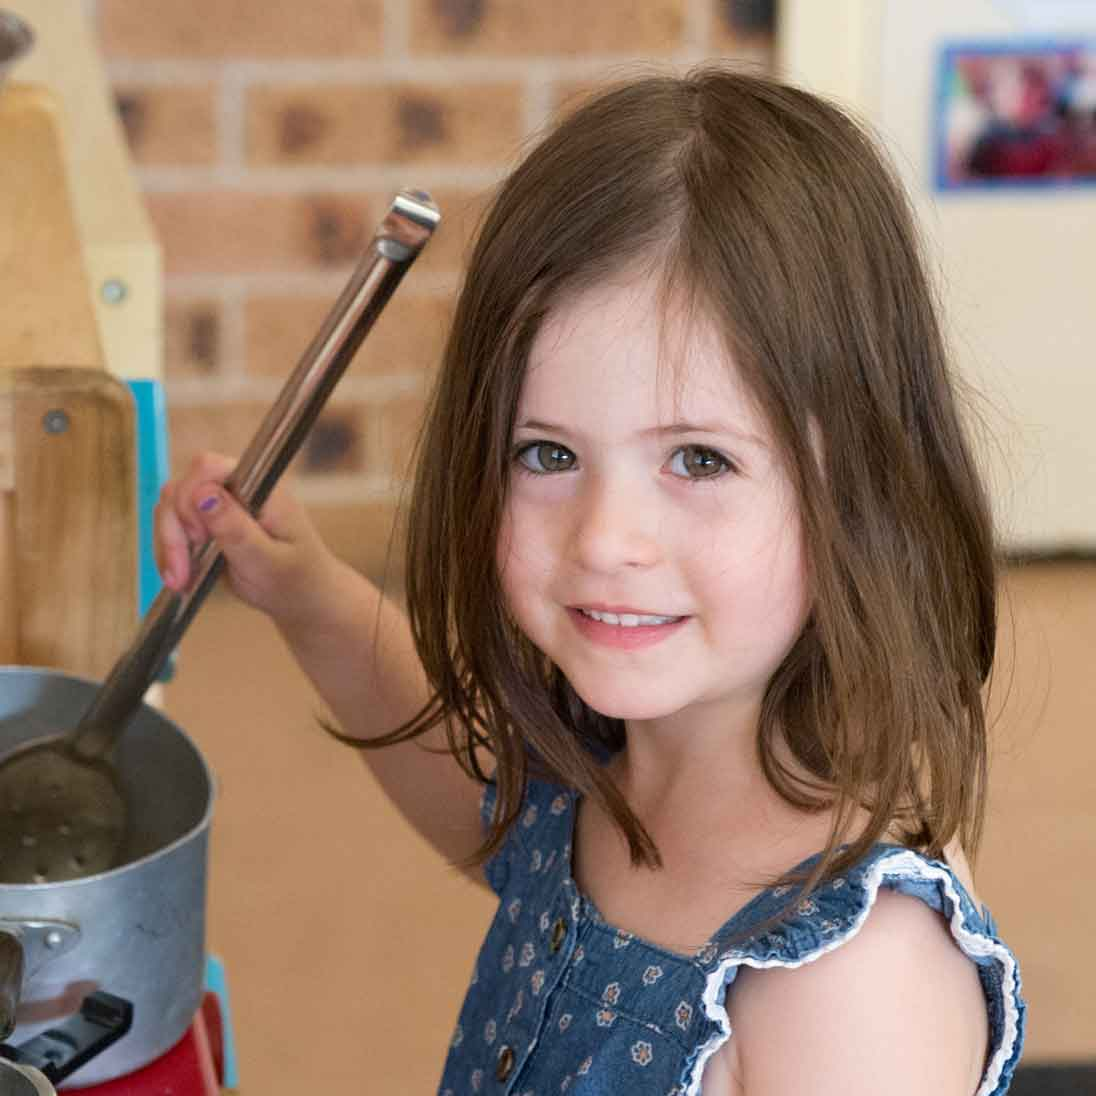 little girl playing with kitchen toys